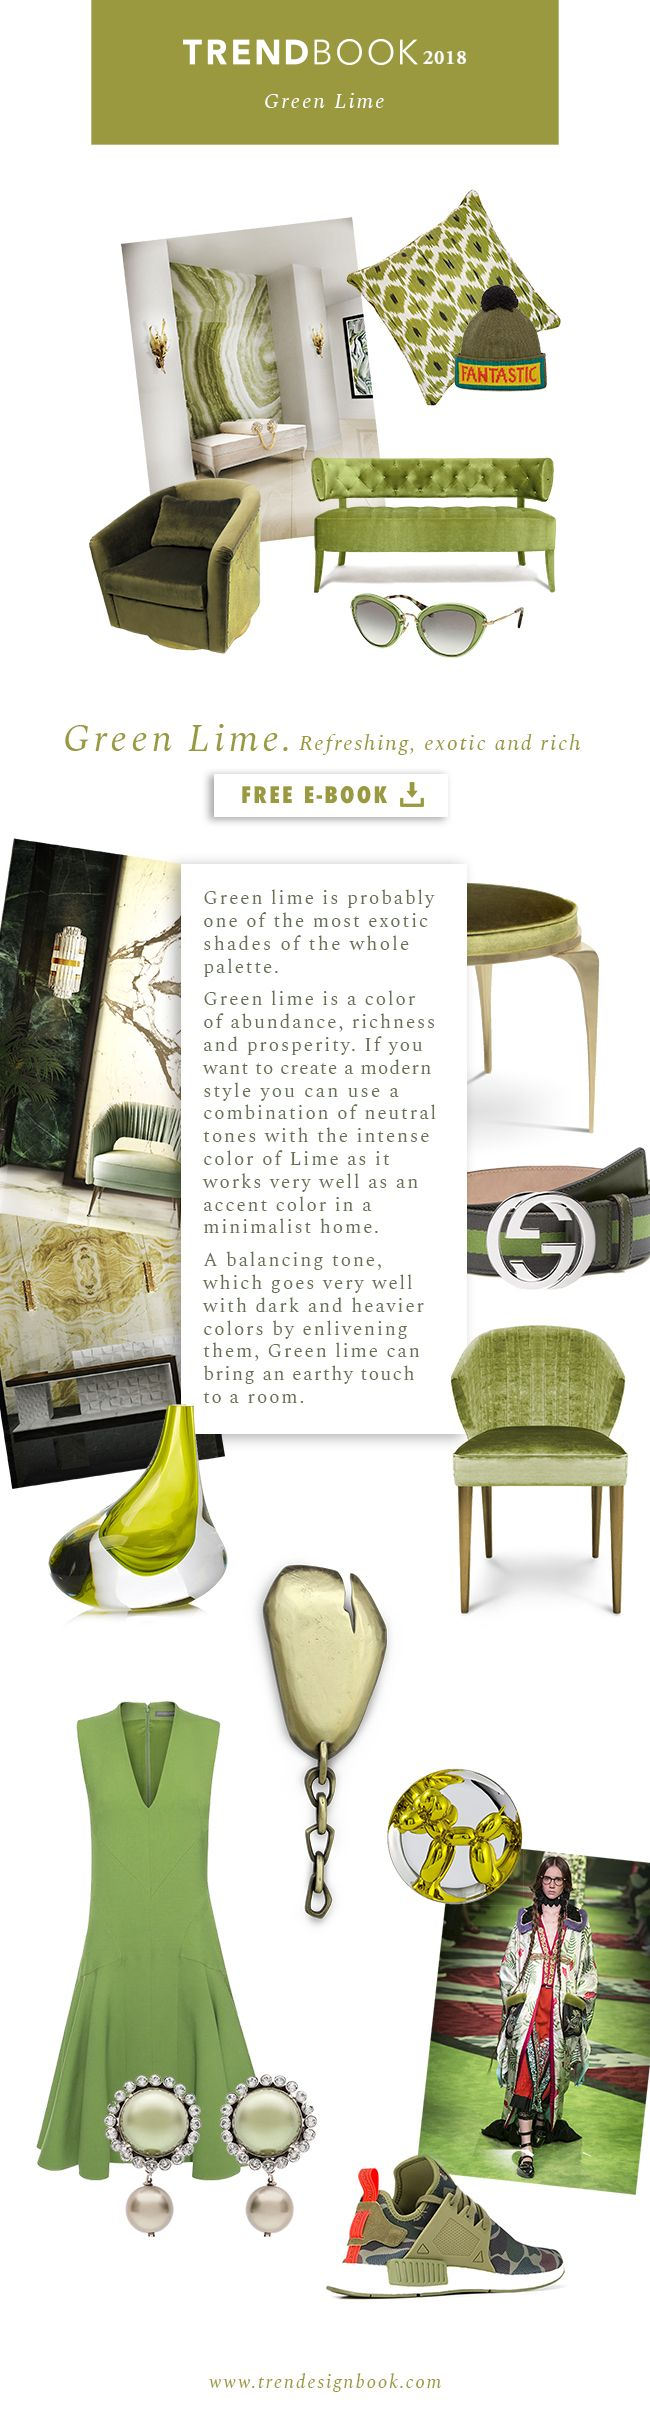 Trends 2018 / 2019 . Color Trends Green Lime . Moodboard